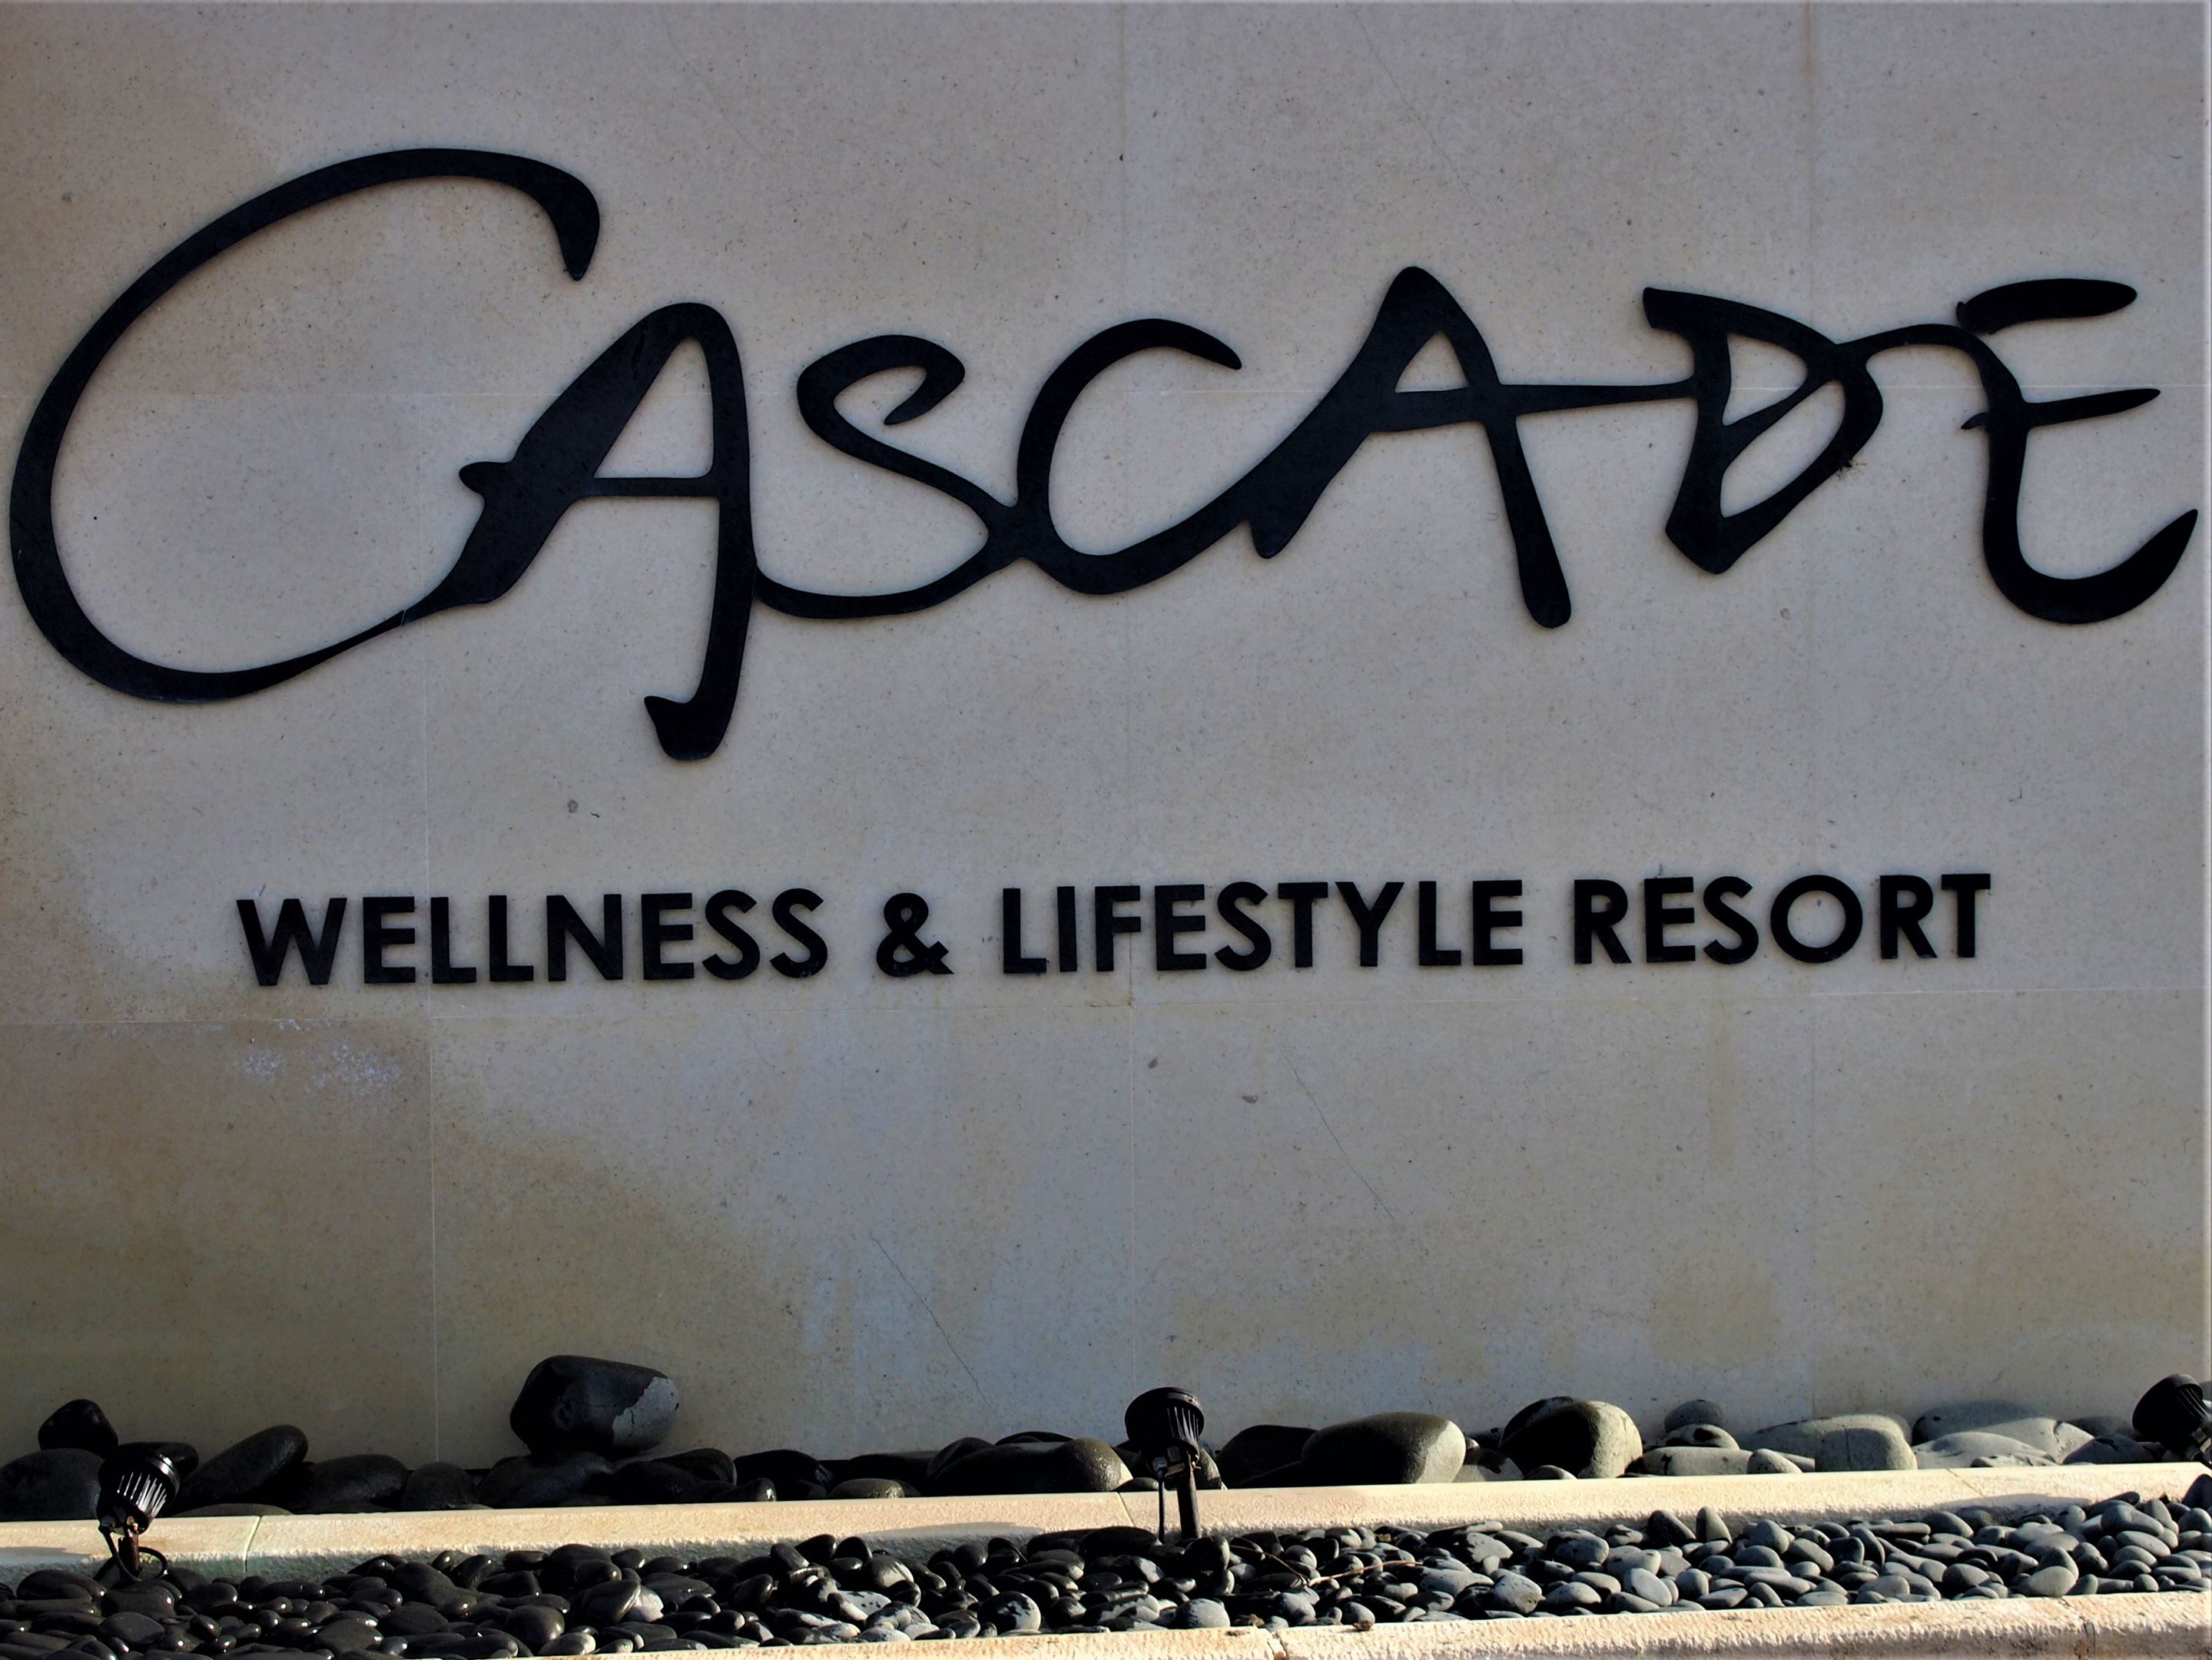 Resort Cascade Wellness & Lifestyle, Lagos